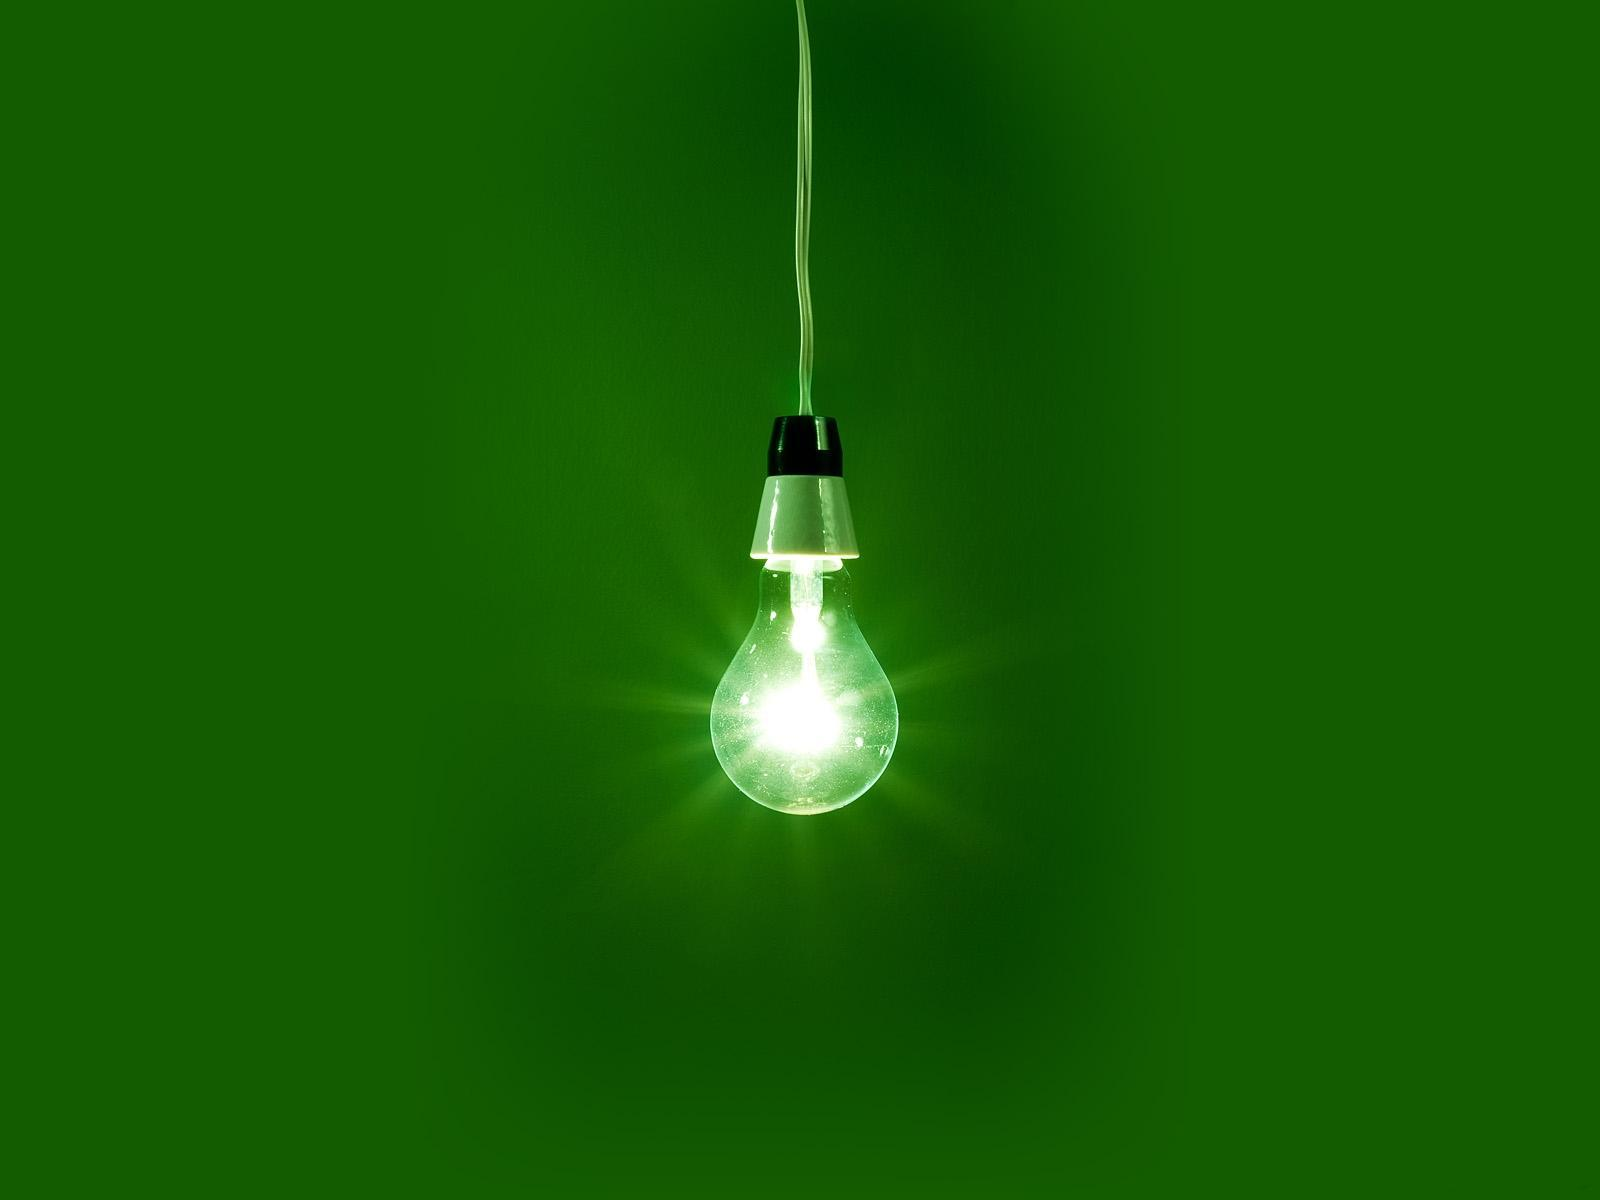 Lamp Wallpapers